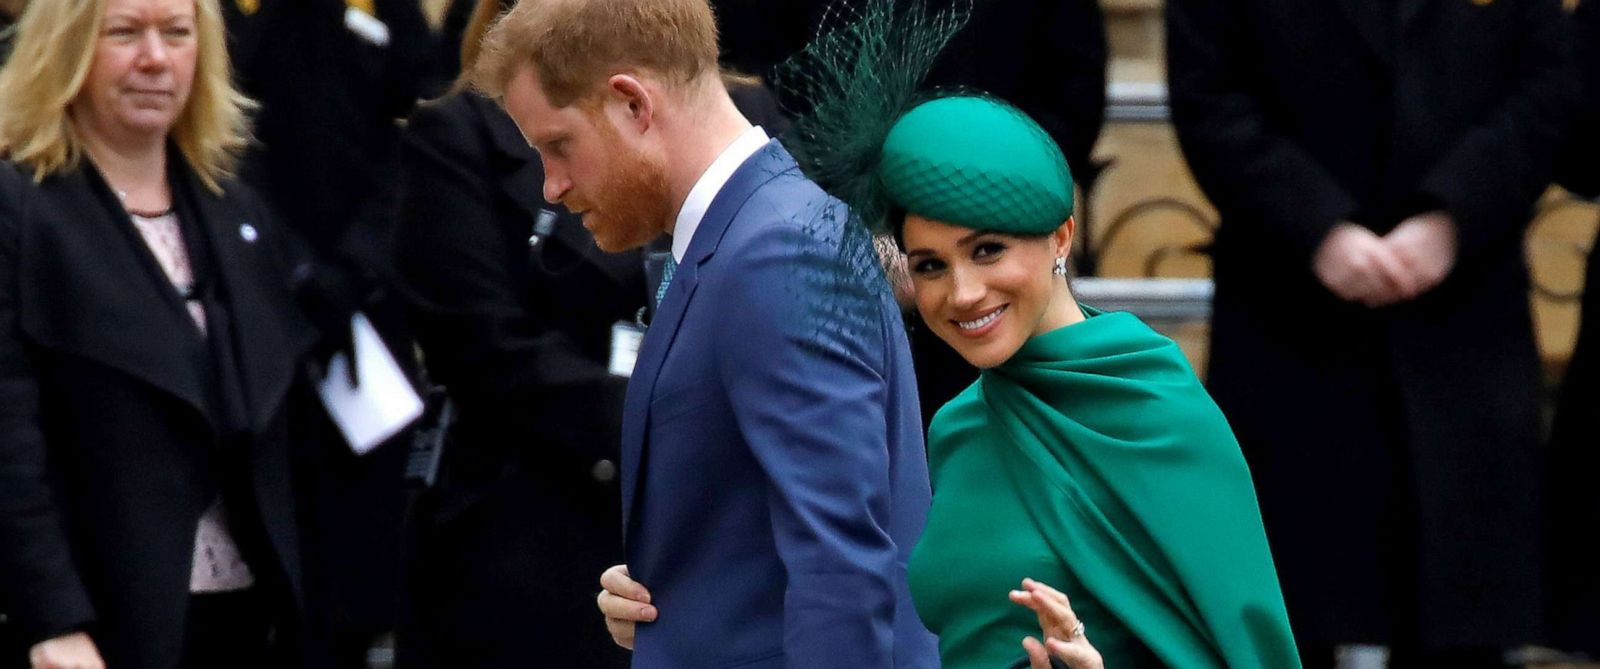 PHOTO: Britain's Prince Harry, Duke of Sussex and Meghan, Duchess of Sussex arrive to attend the annual Commonwealth Service at Westminster Abbey in London, March 09, 2020.